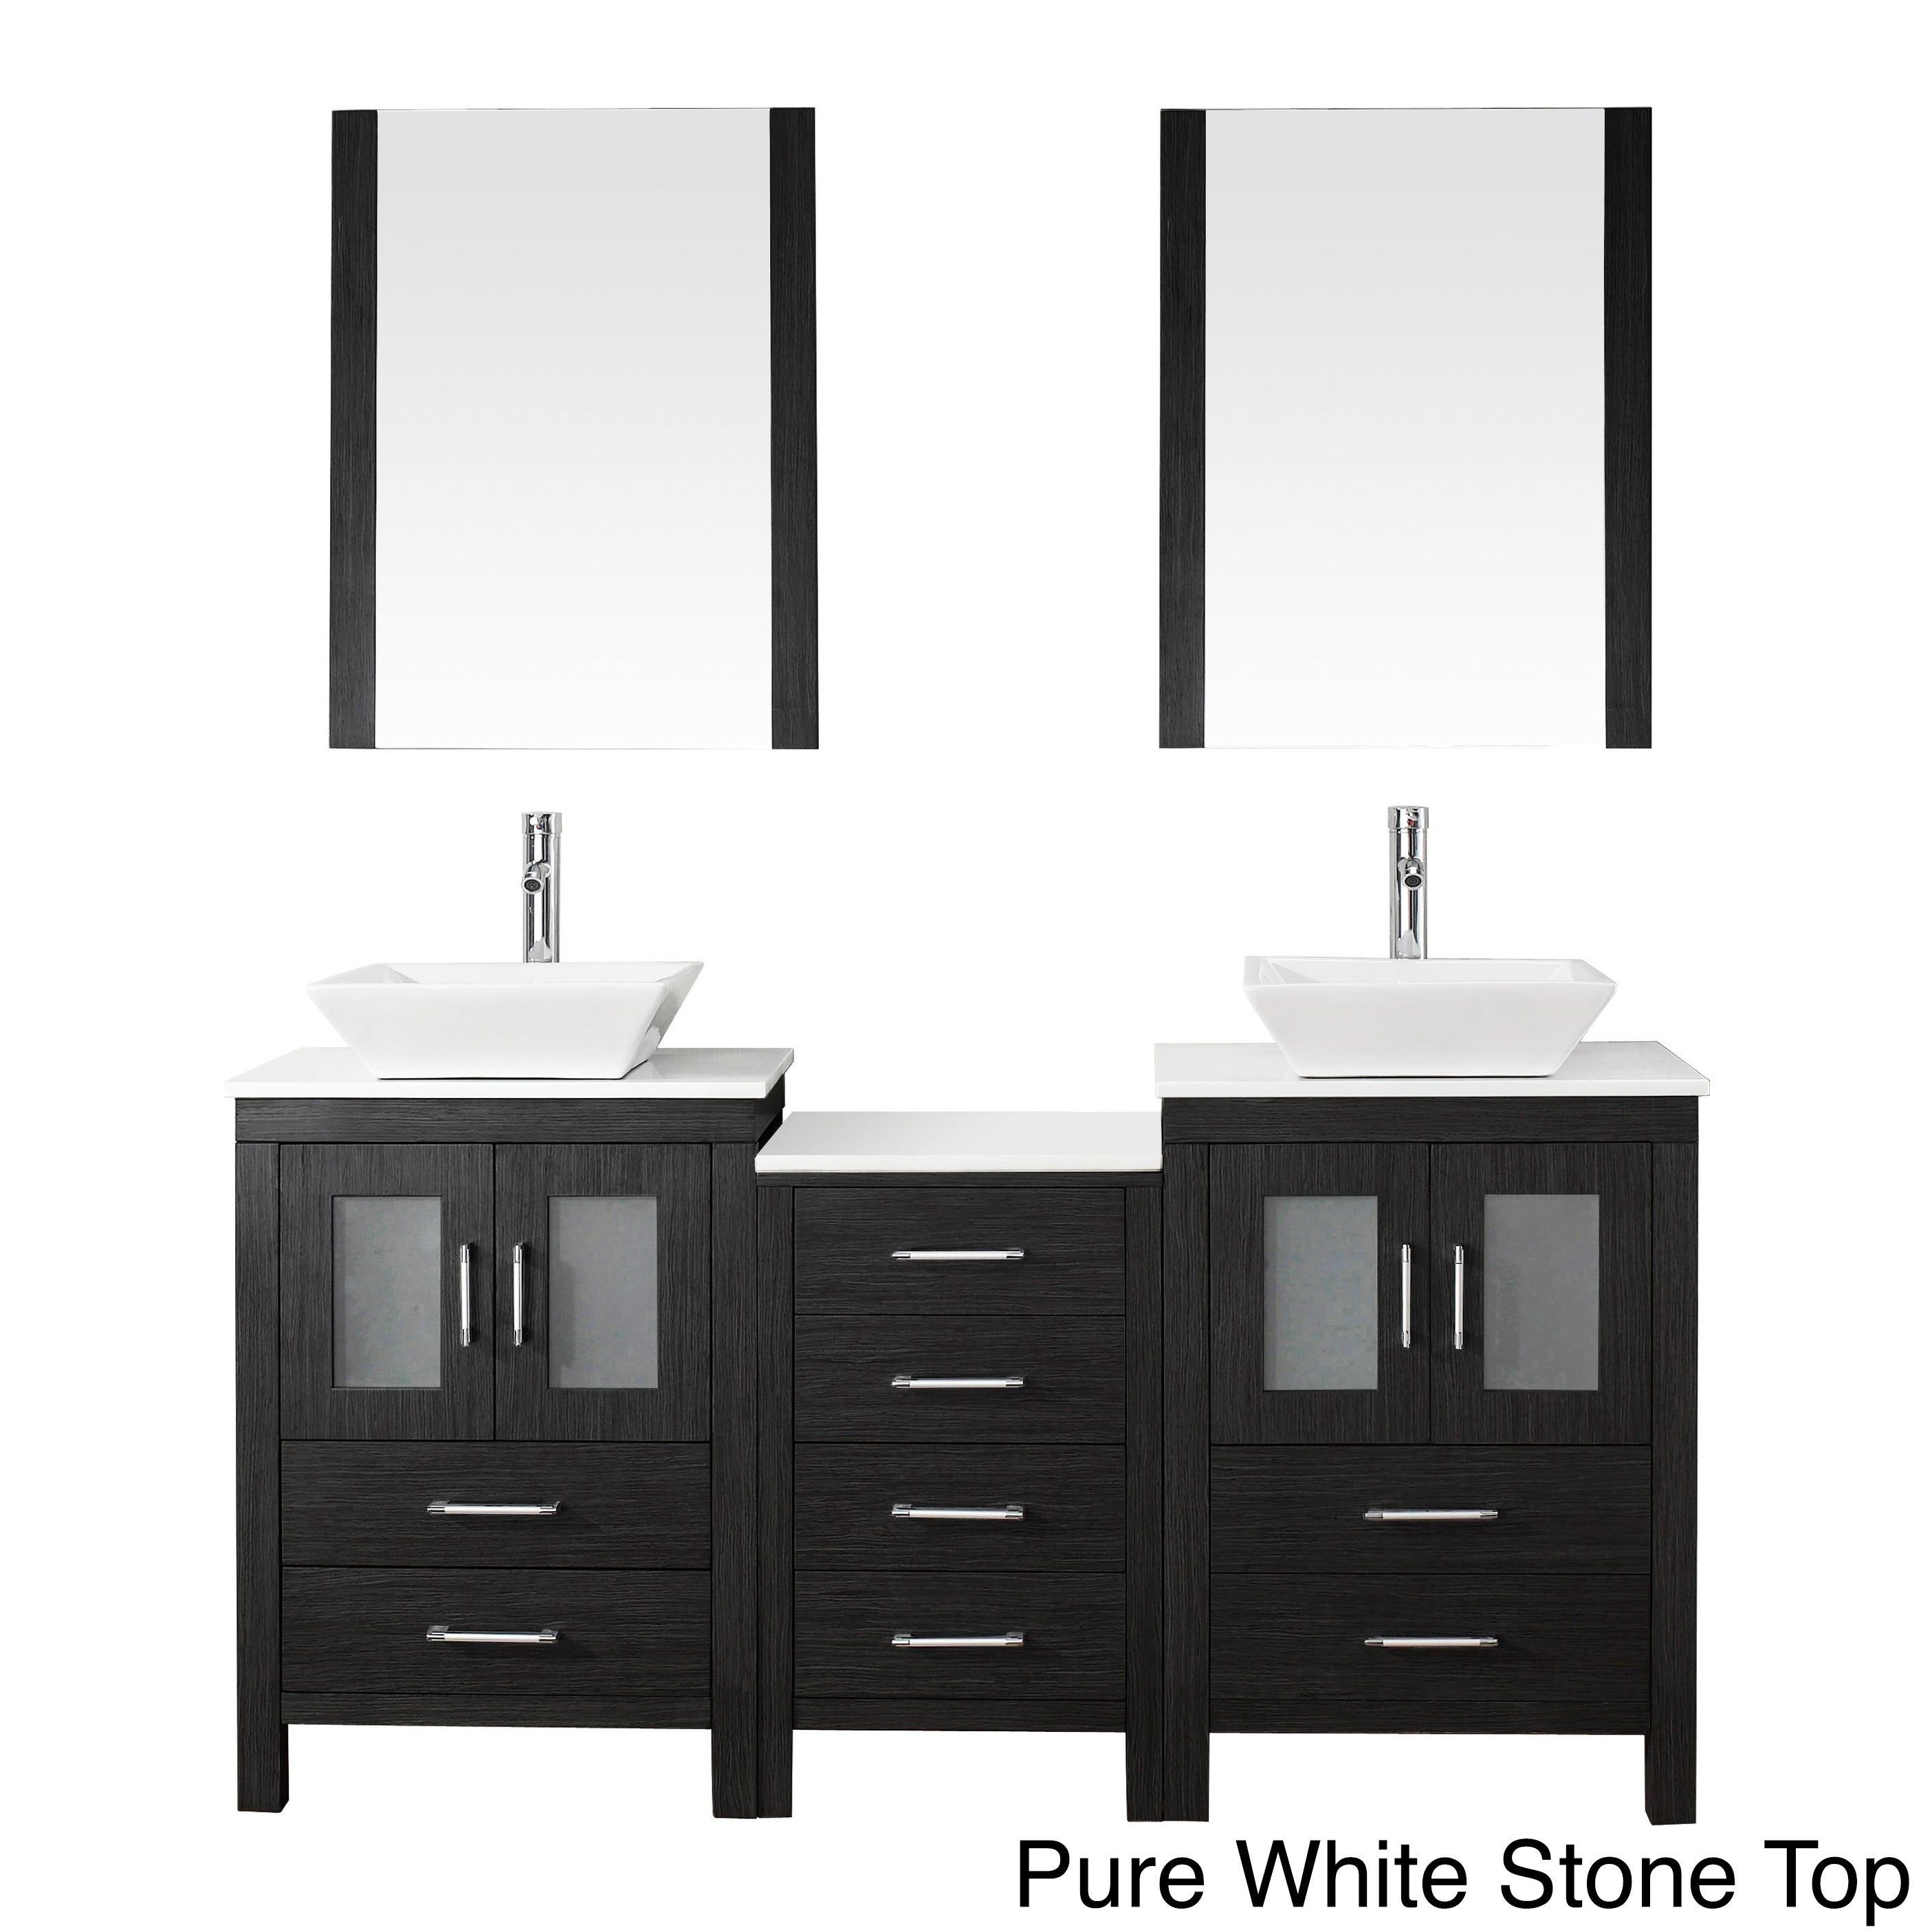 Virtu Usa Dior 66 Inch Double Sink Vanity Set In Zebra Grey Free Shipping Today 8910956